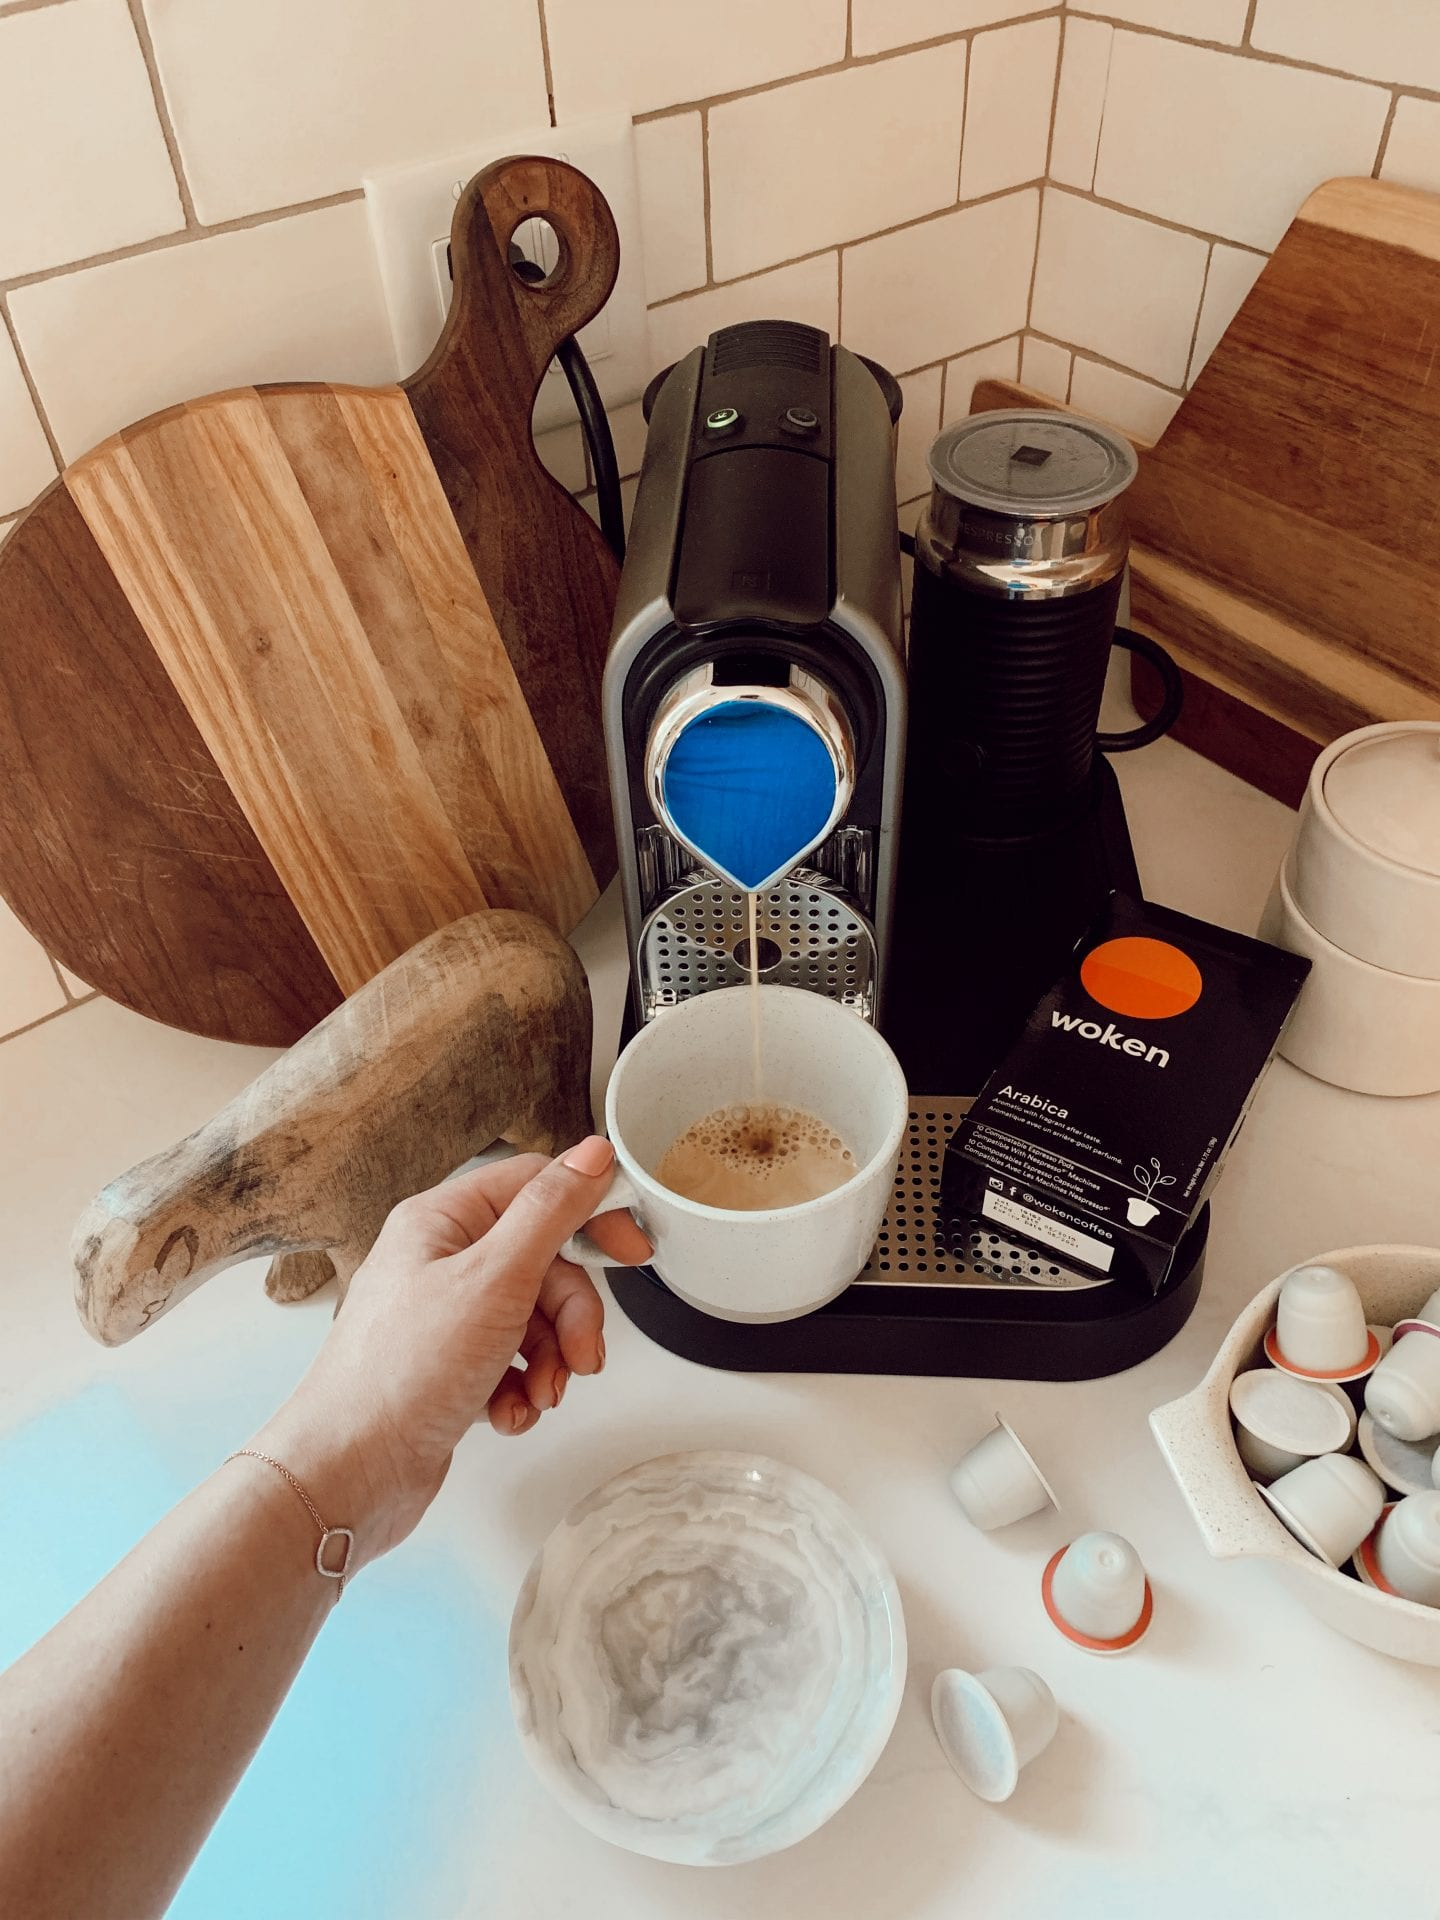 ditching starbucks habit | WHY I'M DITCHING MY STARBUCKS ADDICTION AND HOW YOU CAN TOO by popular San Francisco life and style blog, Just Add Glam: image of a woman using an at home espresso machine.